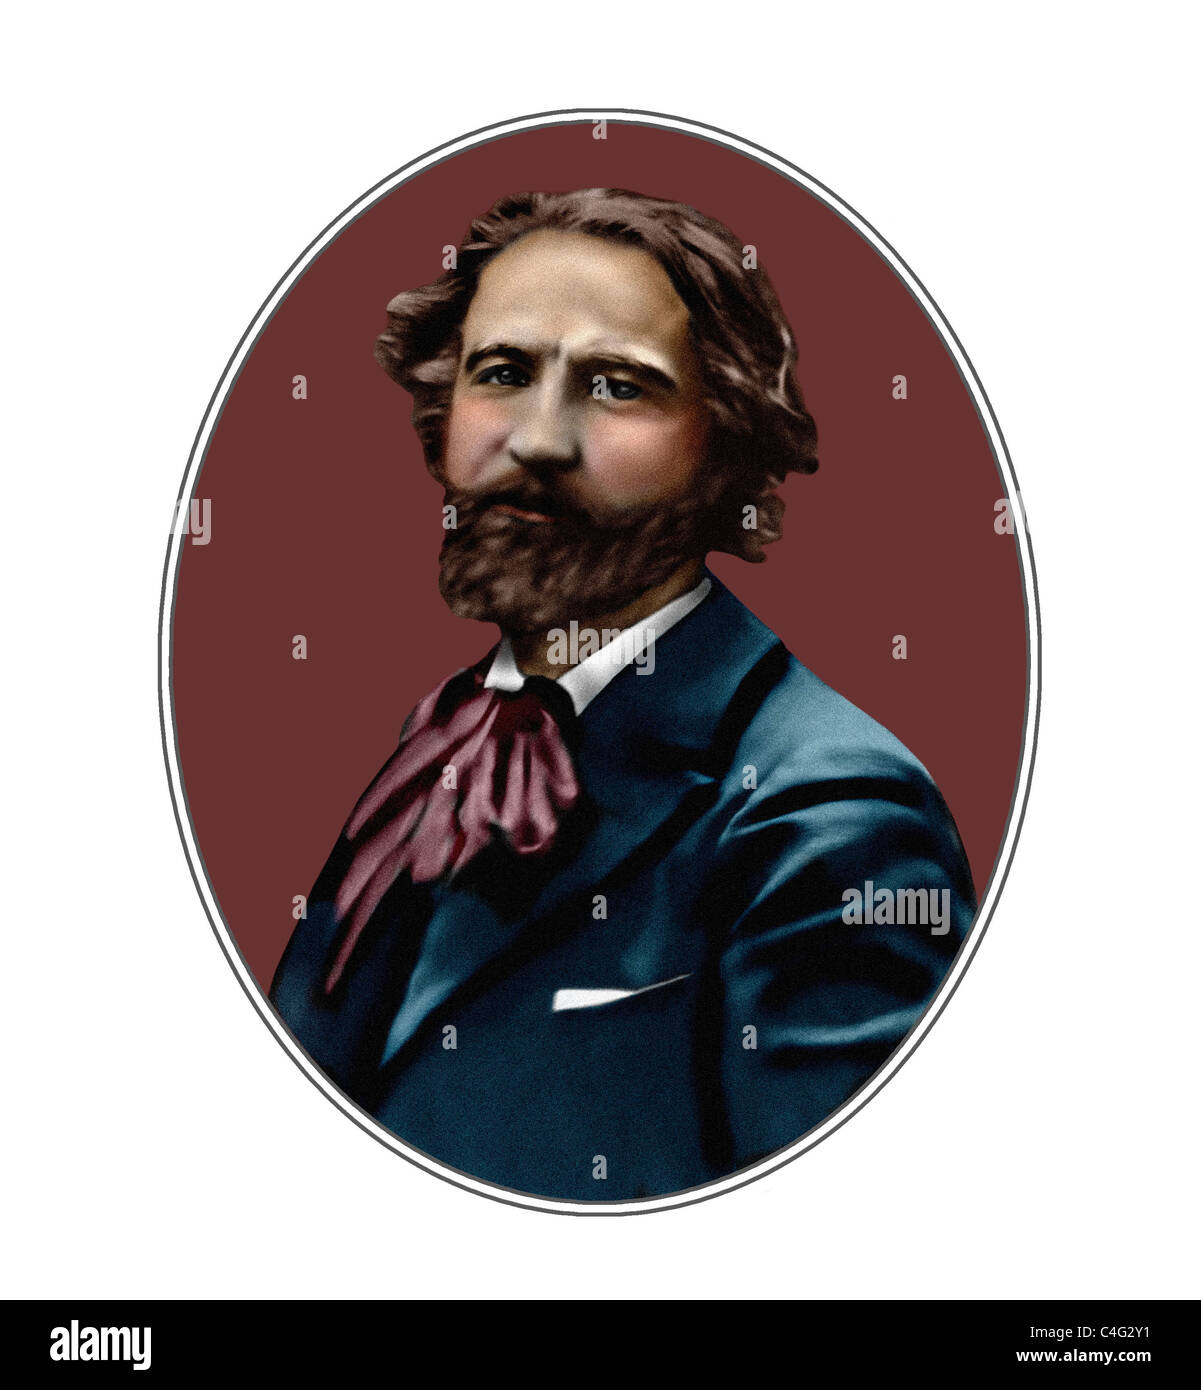 Gustave Charpentier 1860 1956 French Composer Illustration - Stock Image